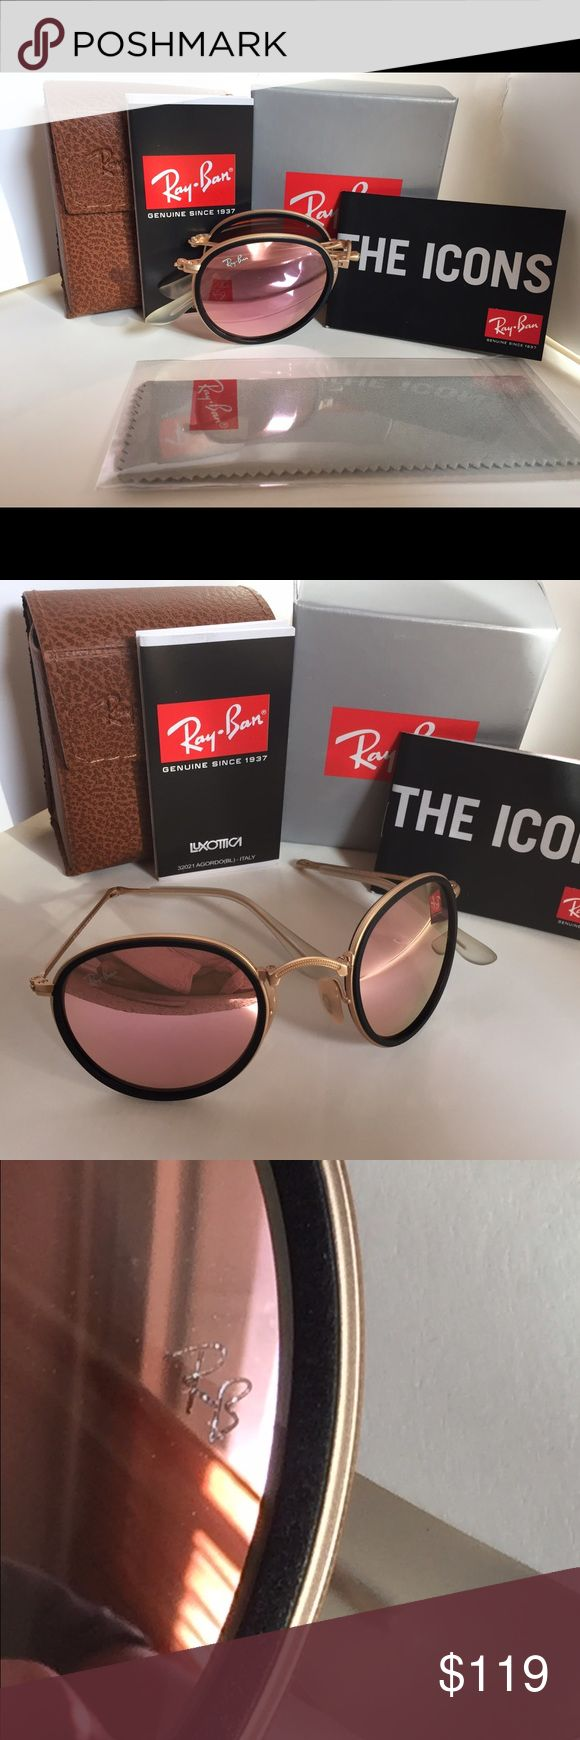 ray ban distributor  1000+ ideas about Ray Ban Models on Pinterest